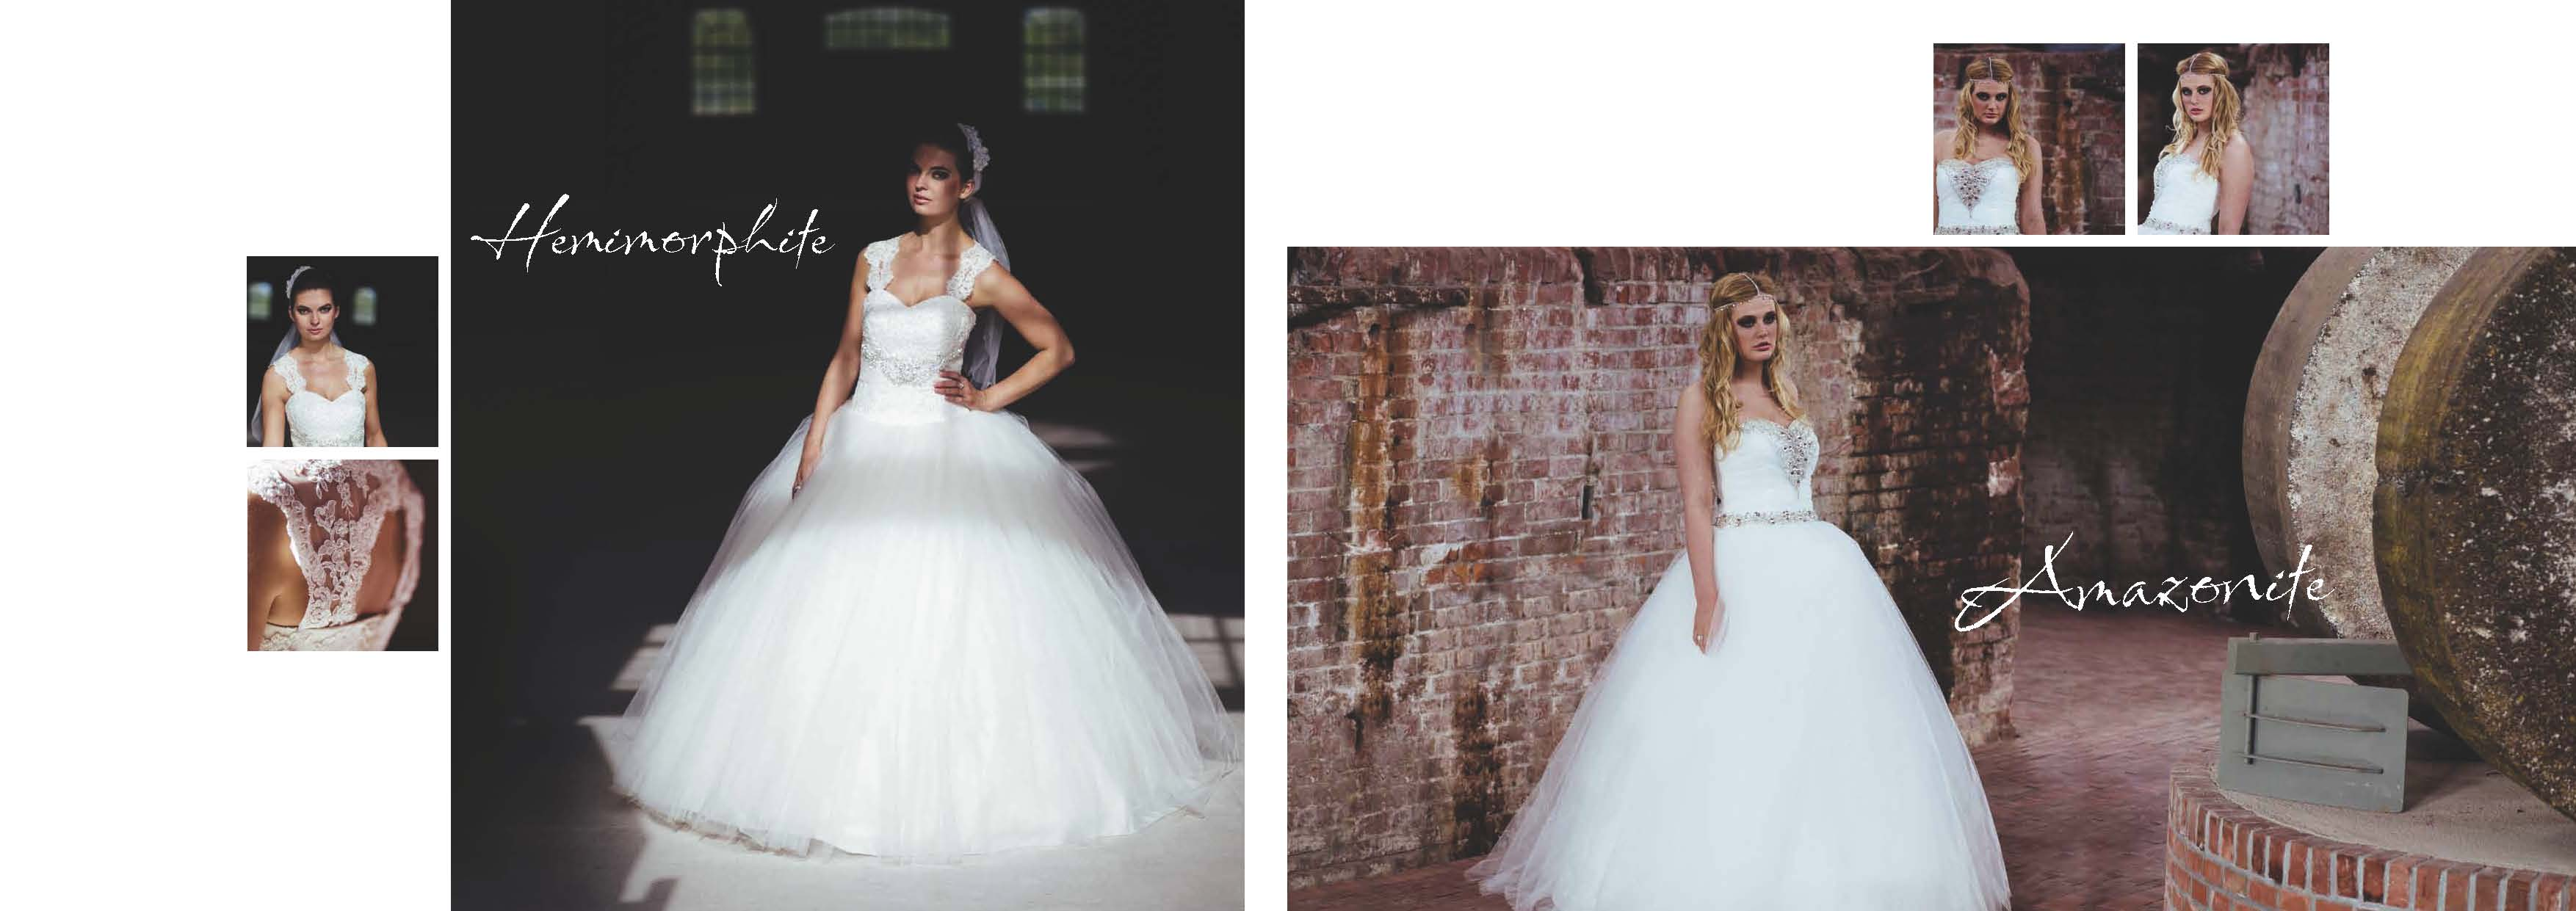 Izmir Bridal new collection - Crystalline_Page_10